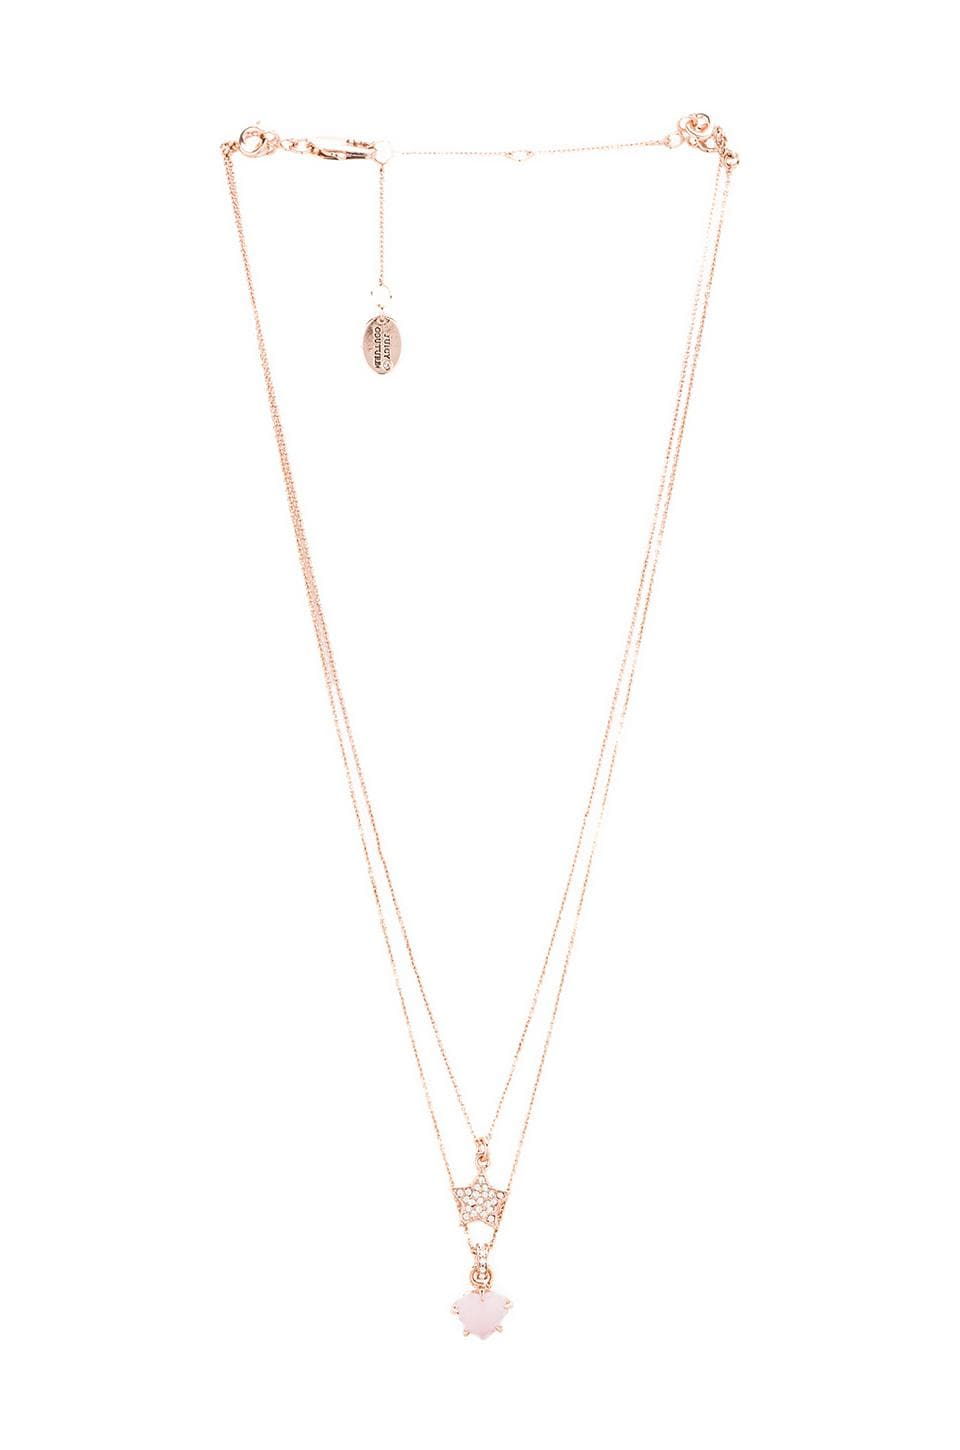 Juicy Couture Double Layer Pave Star Necklace in Rose Gold